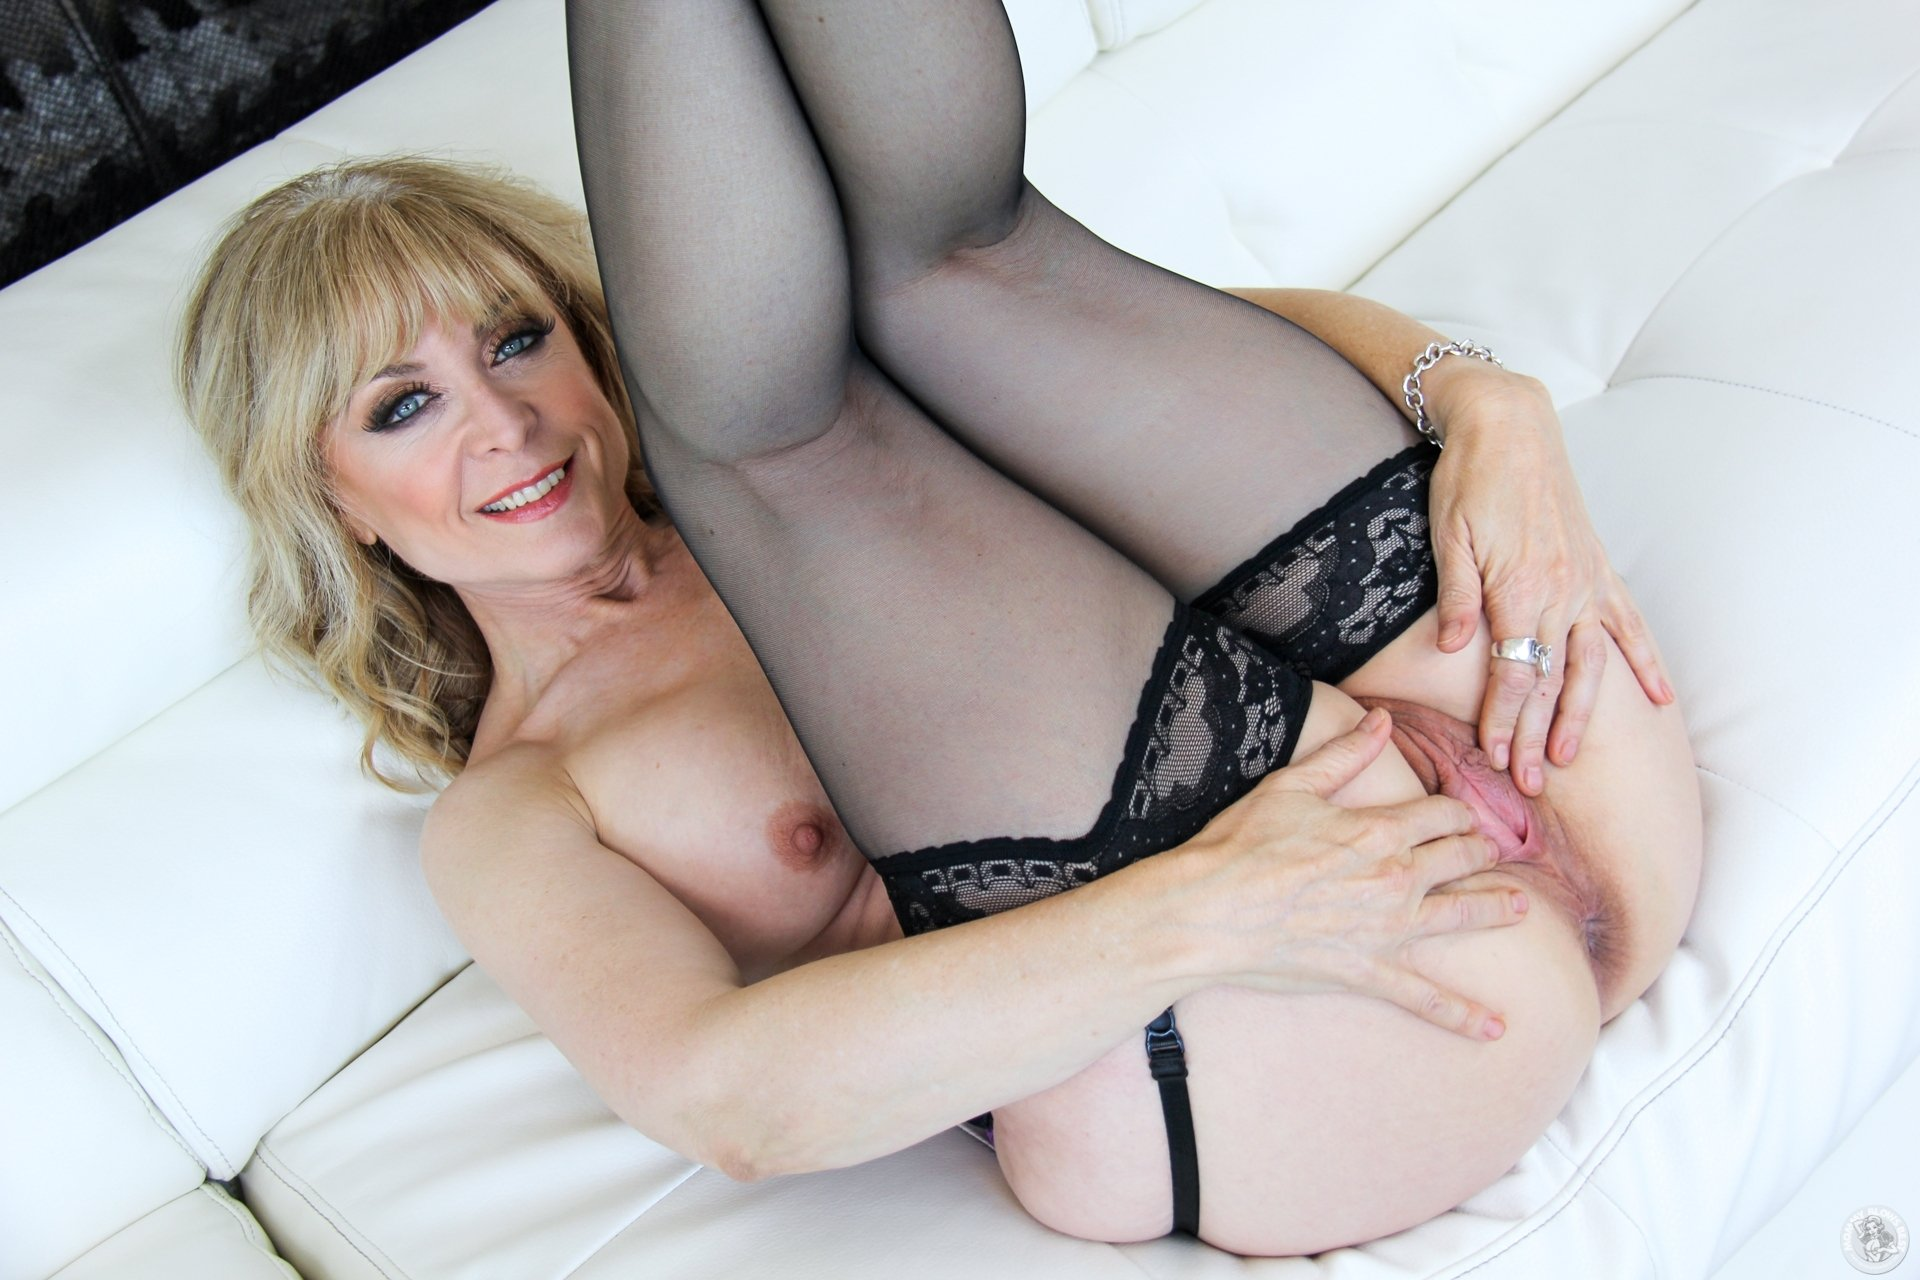 beautiful mature nude videos authoritative answer